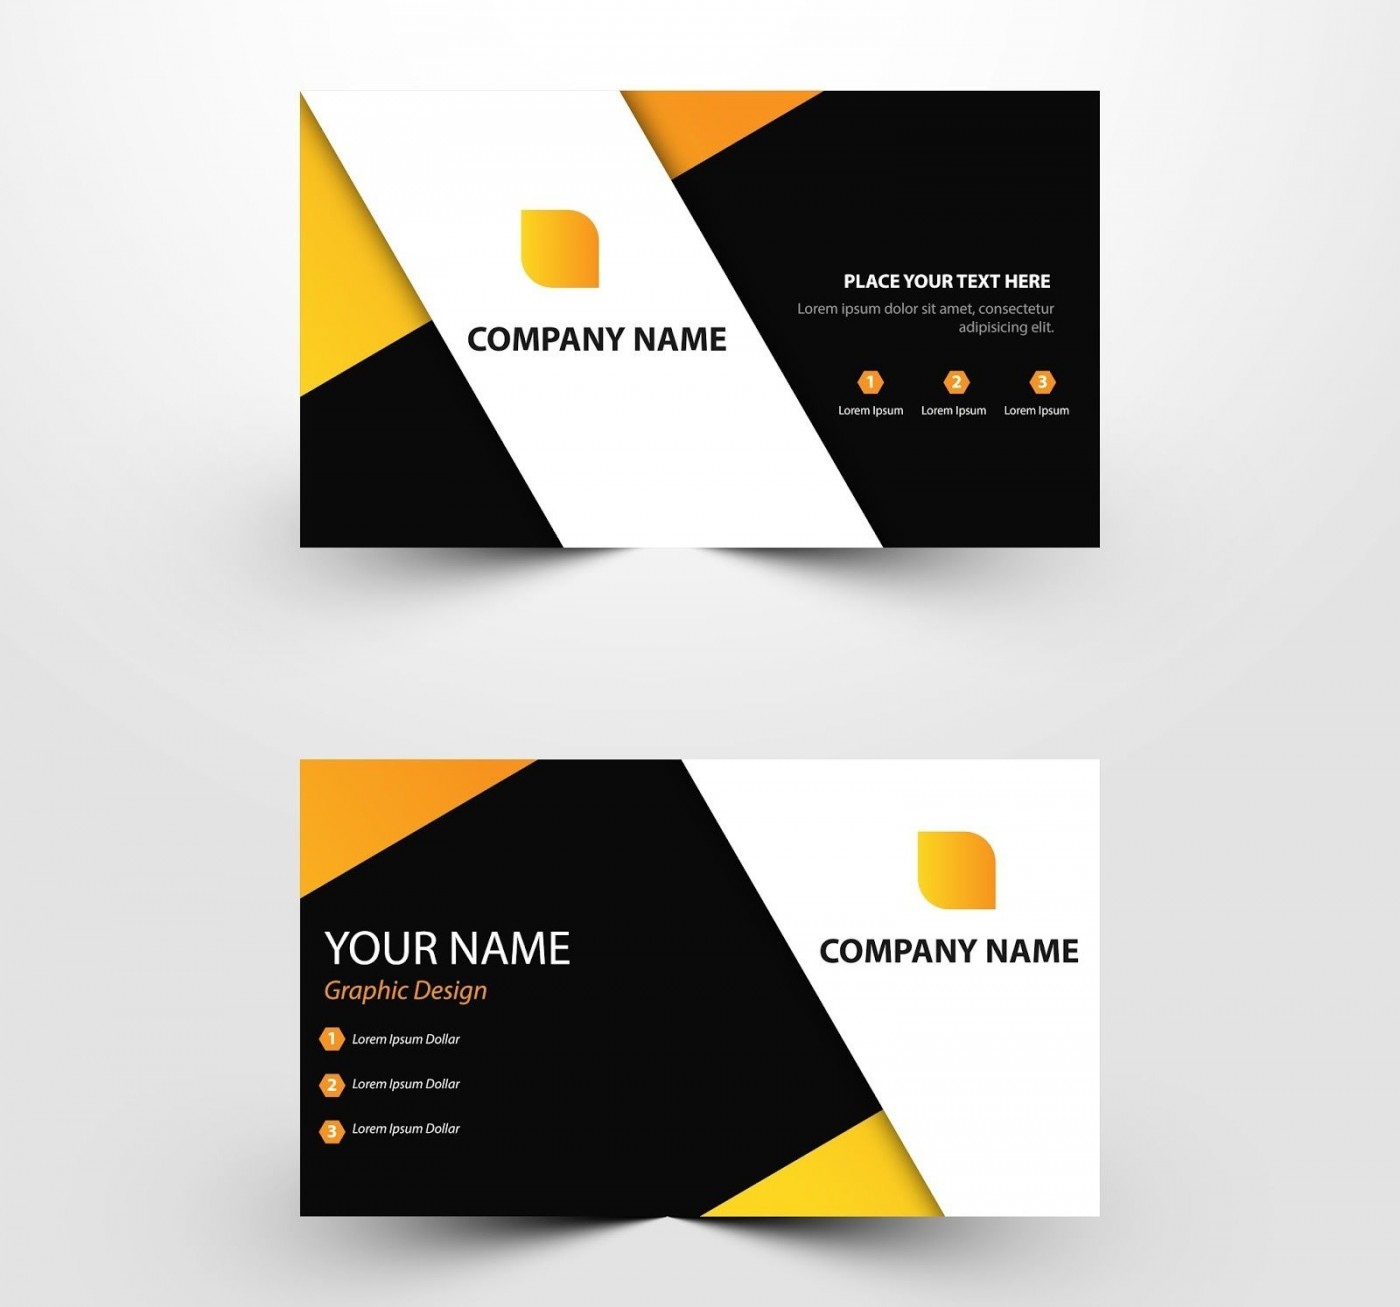 009 Awful Free Adobe Photoshop Busines Card Template Example  Download1400